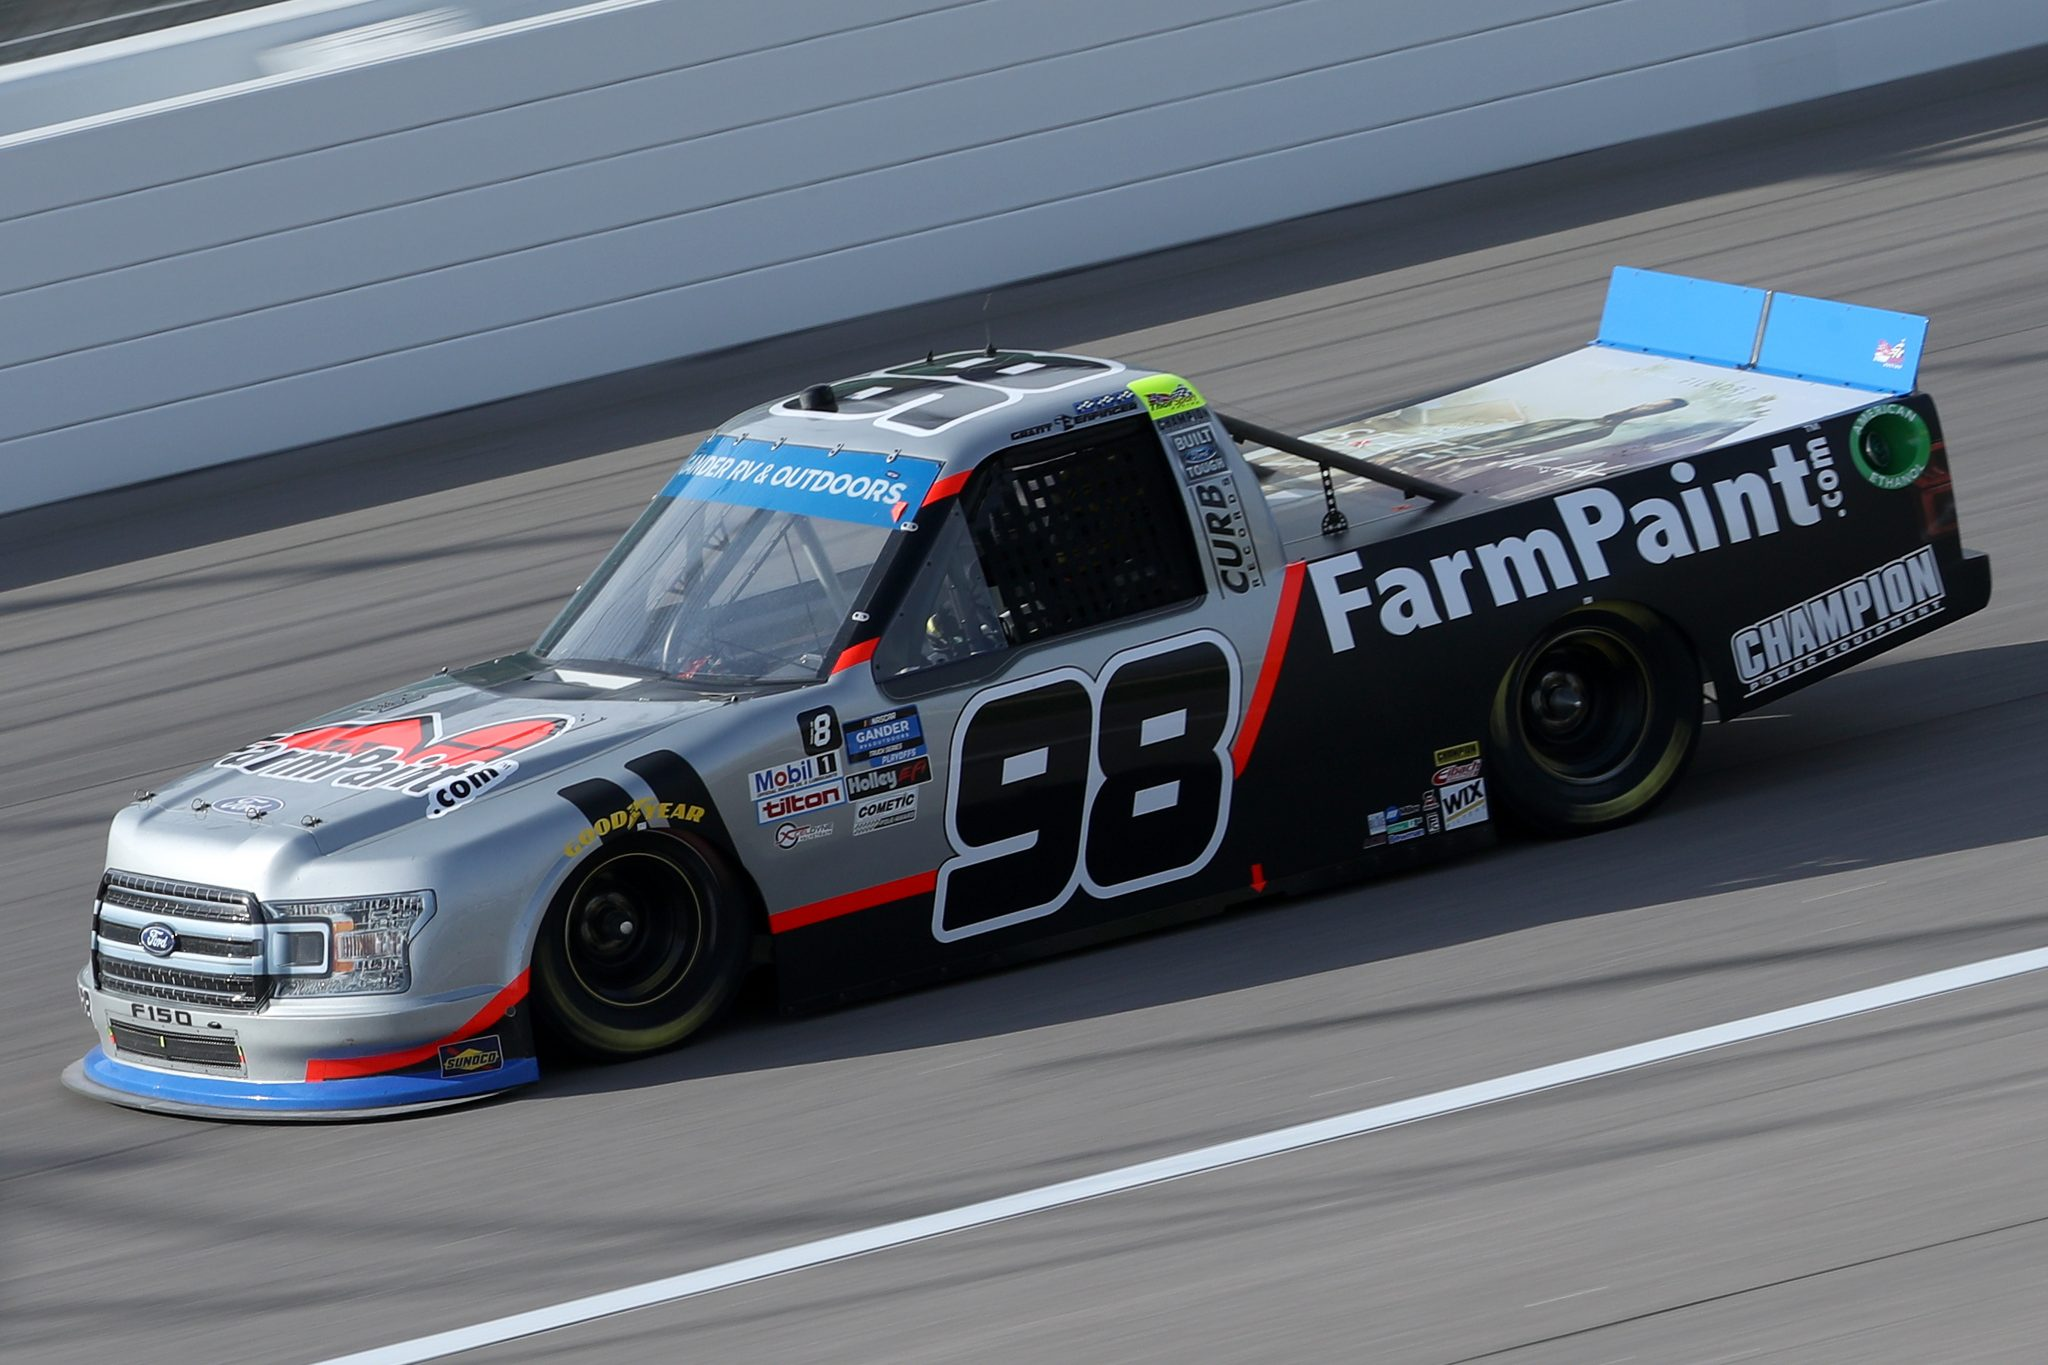 KANSAS CITY, KANSAS - OCTOBER 17: Grant Enfinger, driver of the #98 Farm Paint/Curb Records Ford, drives during the NASCAR Gander RV & Outdoors Truck Series Clean Harbors 200at Kansas Speedway on October 17, 2020 in Kansas City, Kansas. (Photo by Chris Graythen/Getty Images) | Getty Images